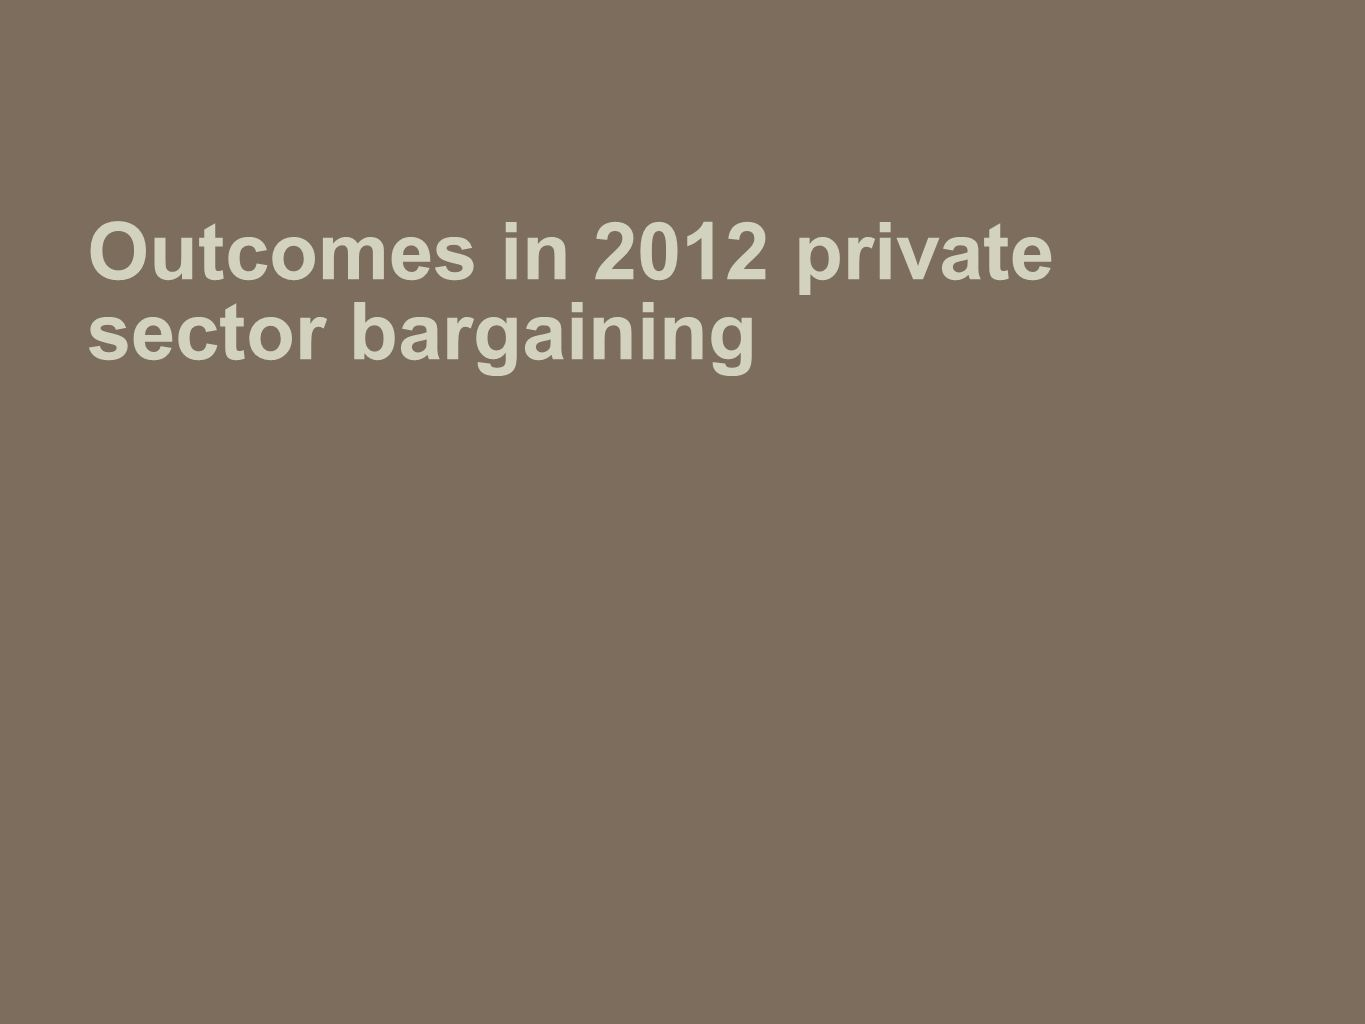 Outcomes in 2012 private sector bargaining